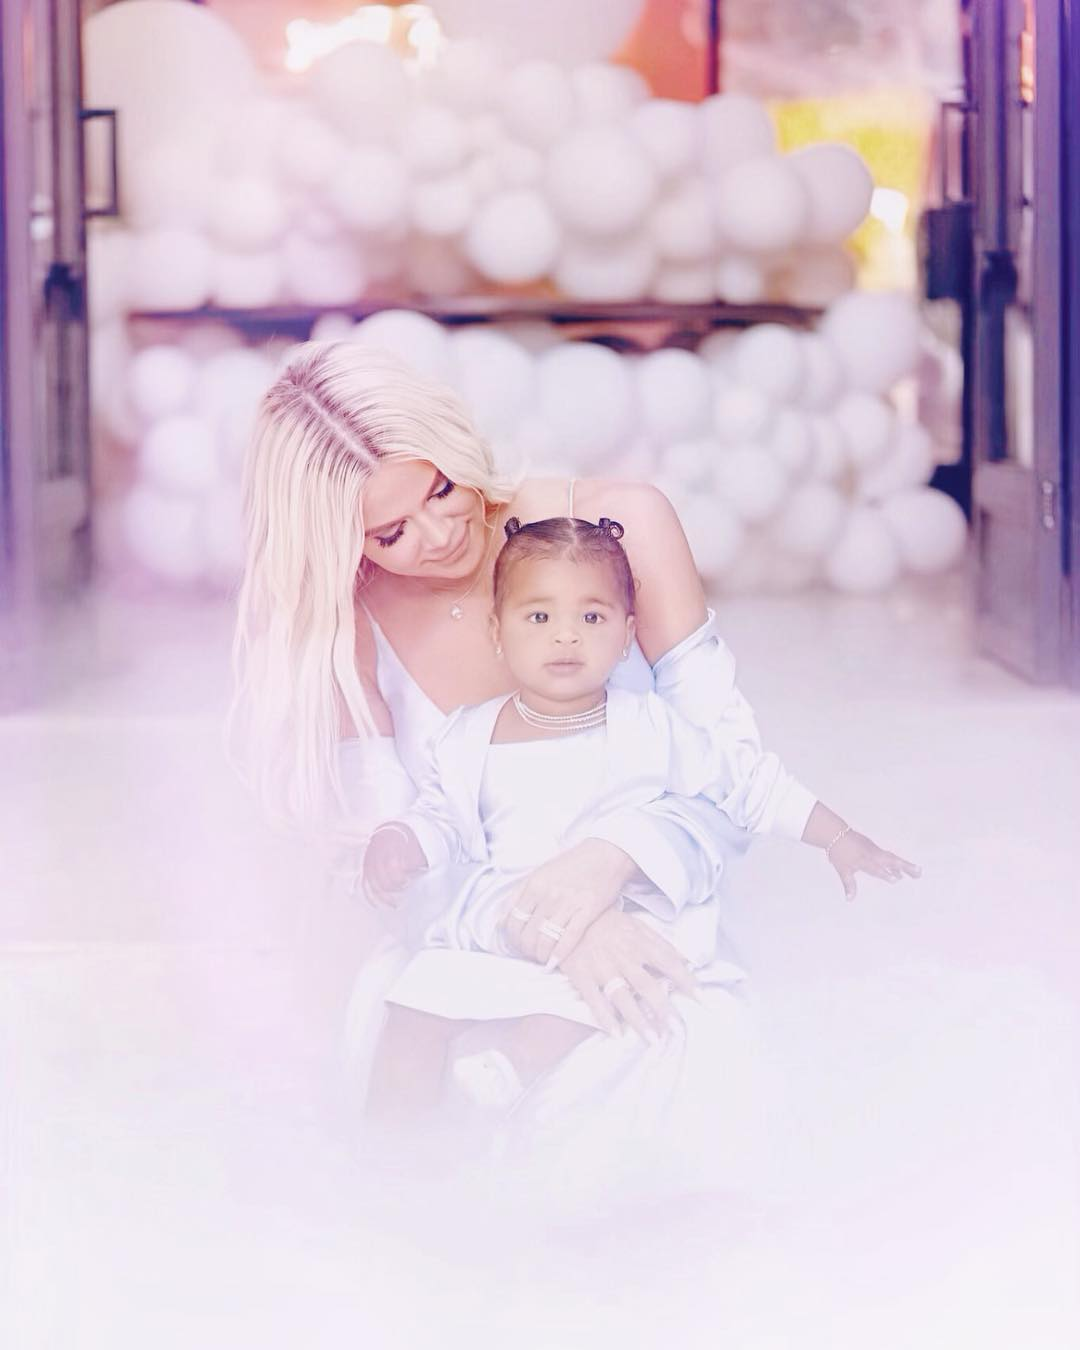 Khloe Kardashian's Daughter True Thompson First Birthday Party Photos 3